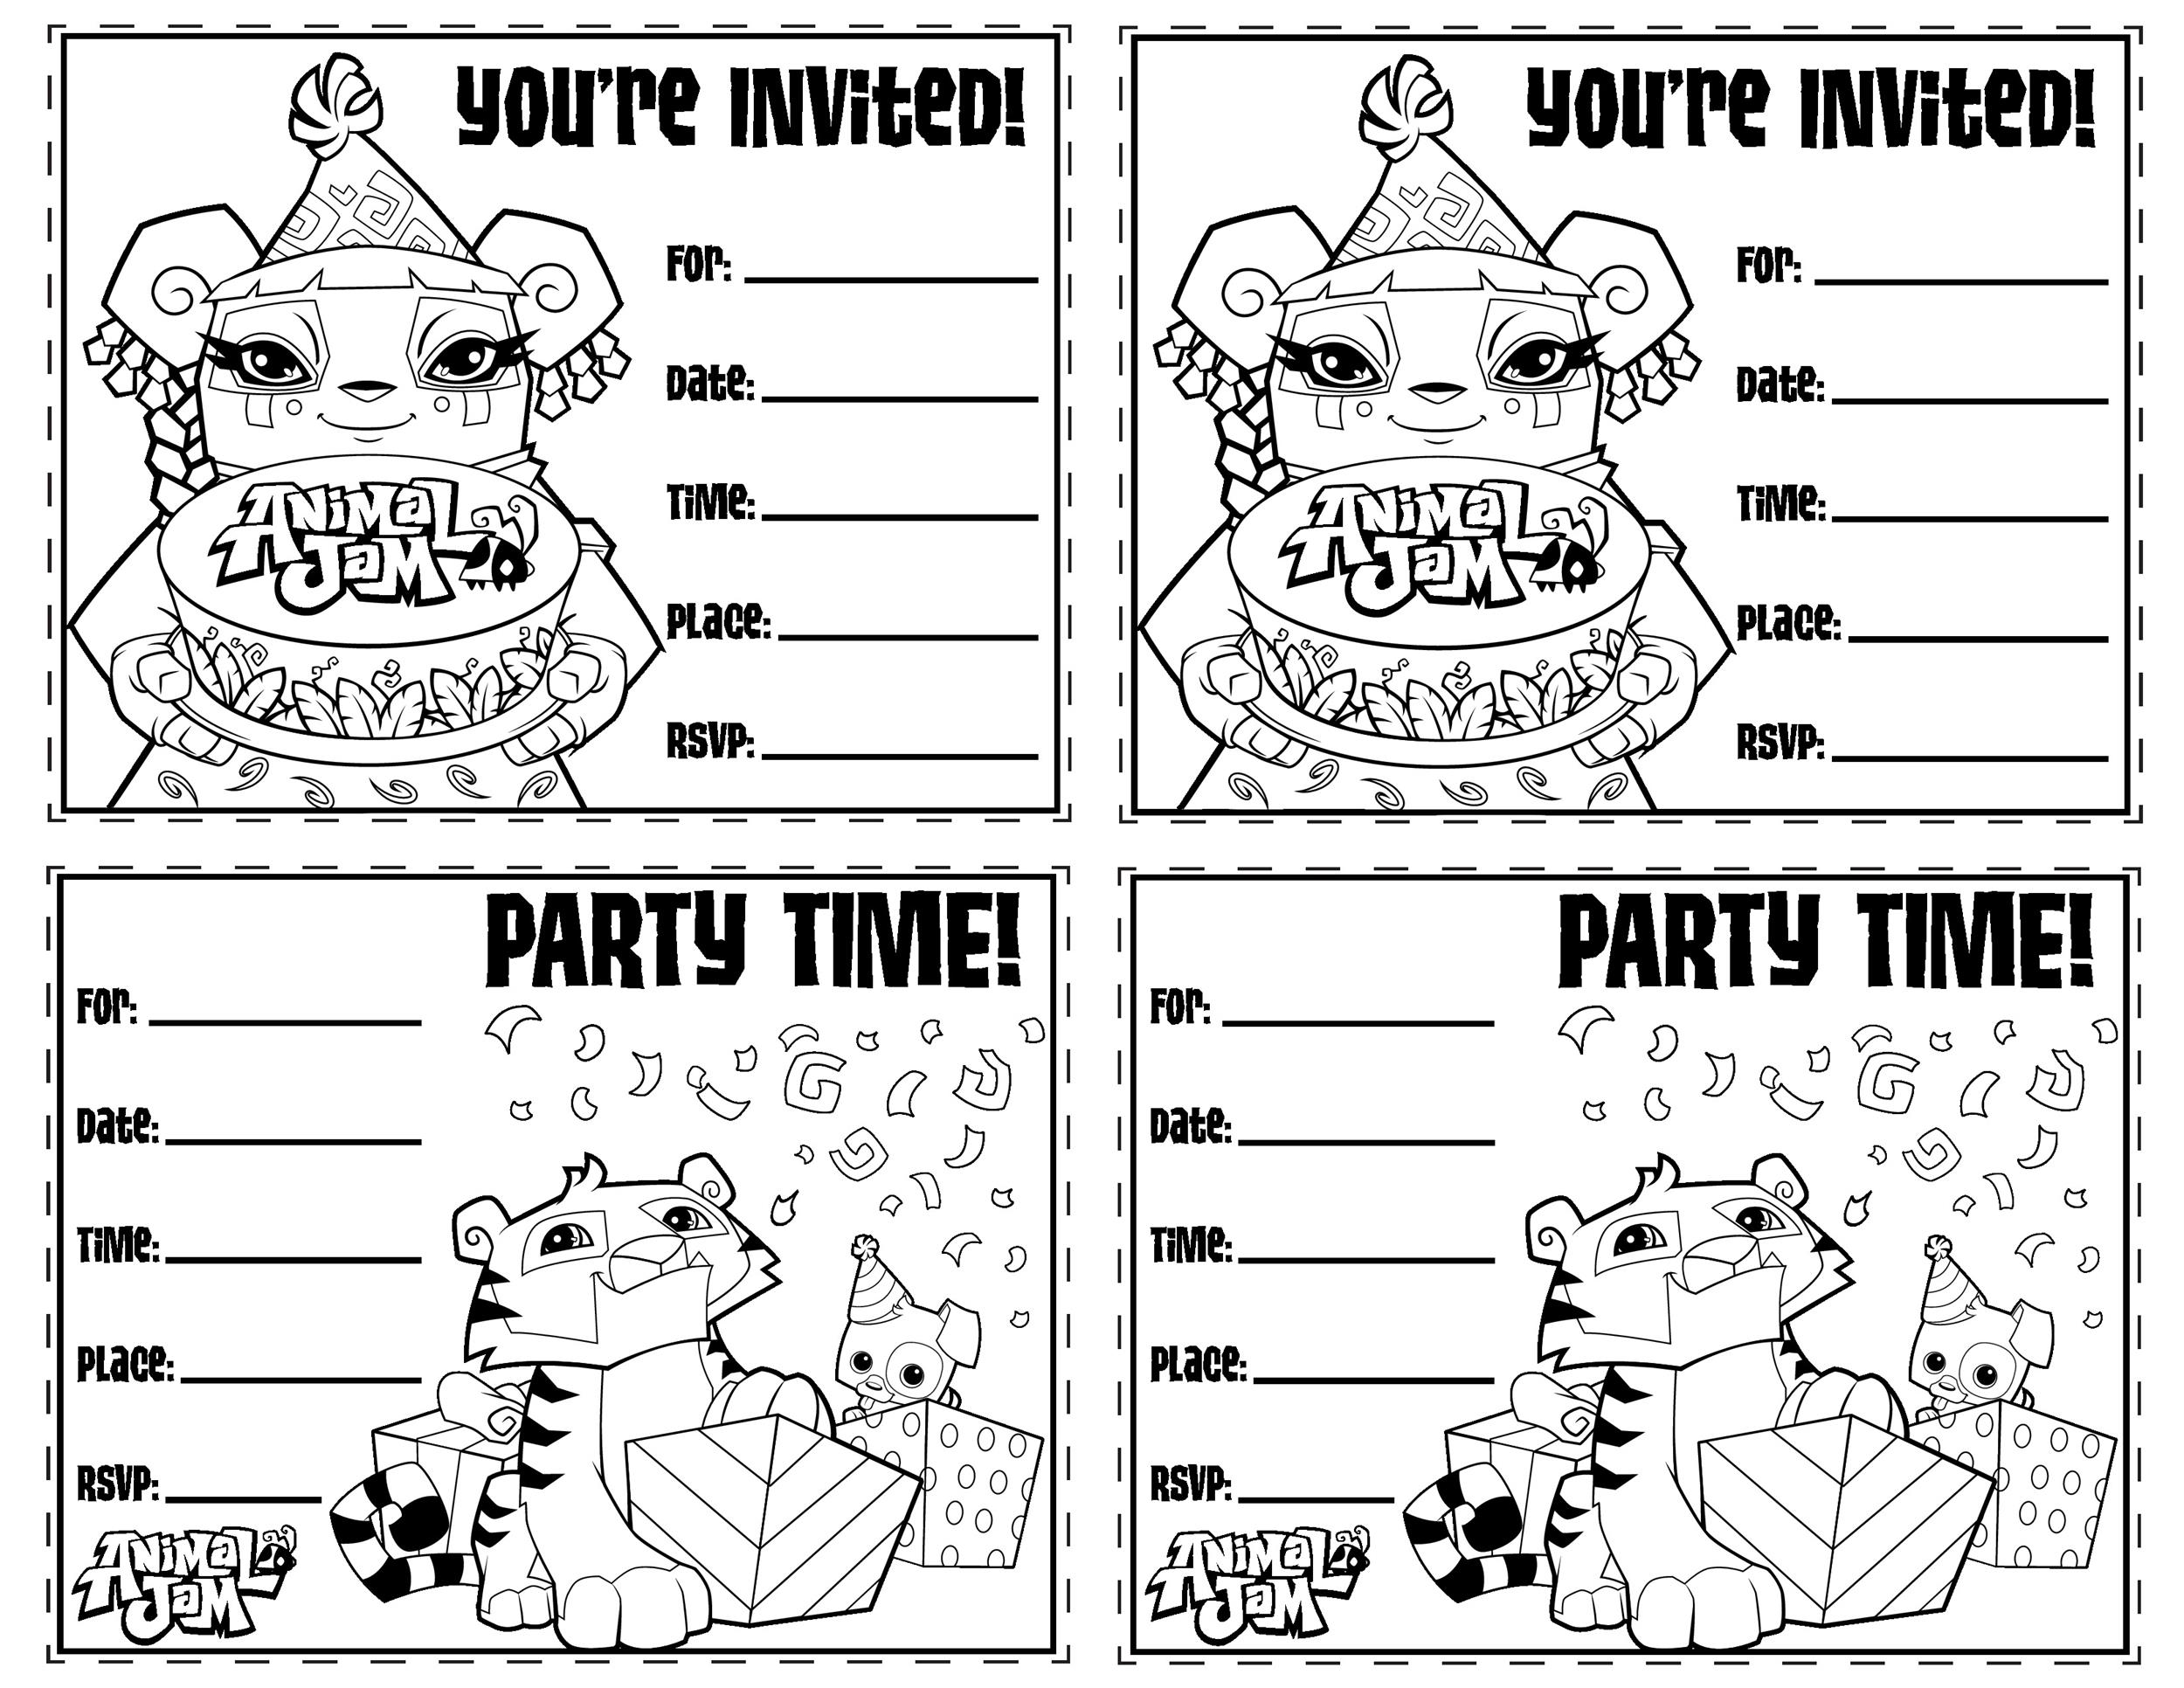 40 free birthday party invitation templates template lab printable birthday invitation template 02 filmwisefo